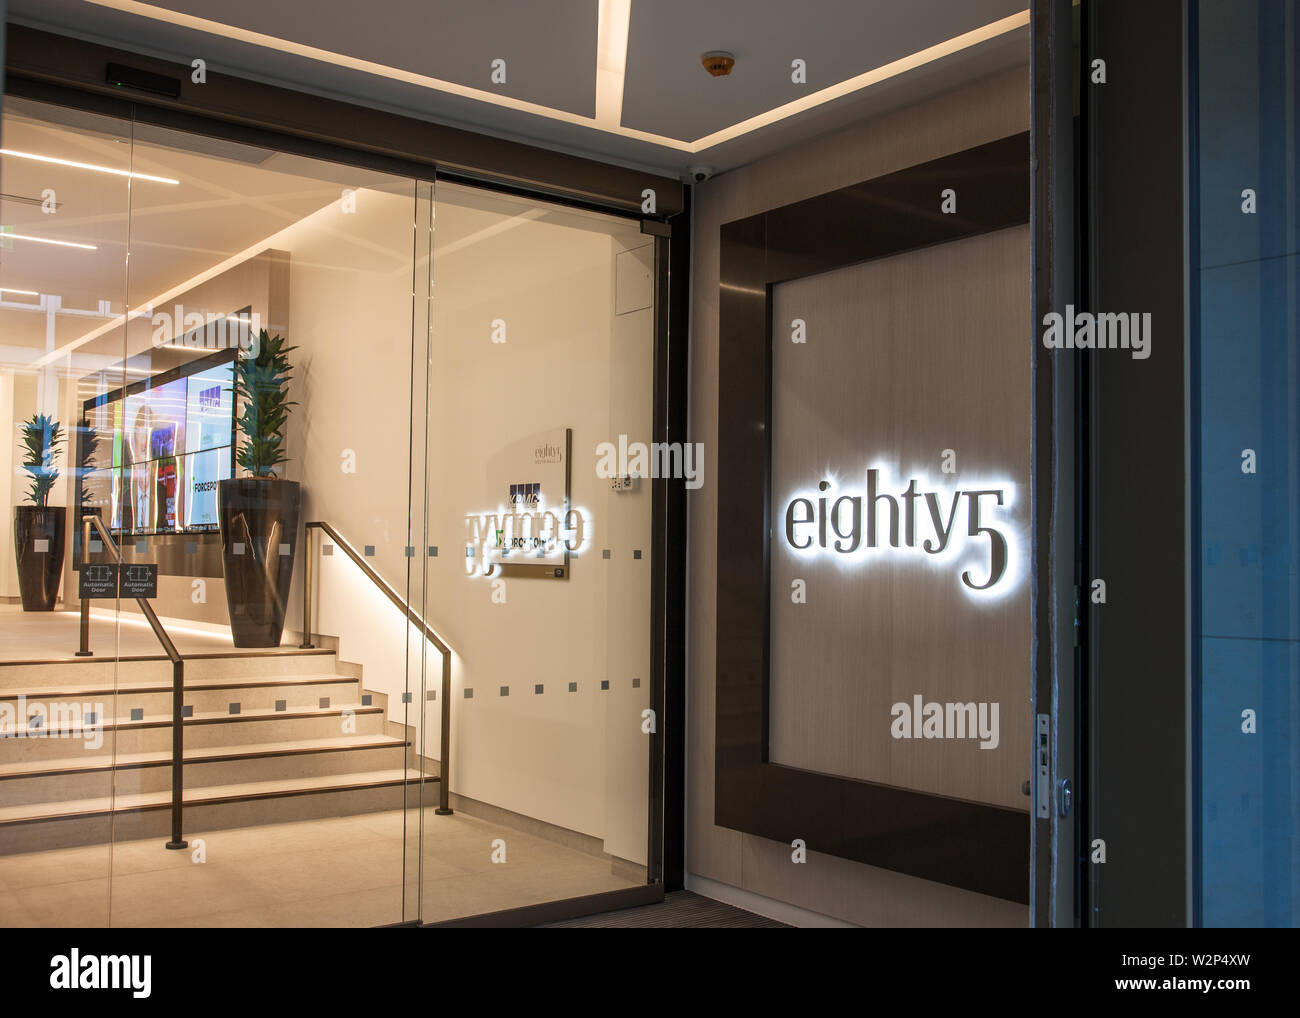 Cork City, Cork, Ireland. 06th April, 2019. Lobby of the brand new eighty5 building on the South Mall in Cork, Ireland. - Stock Image